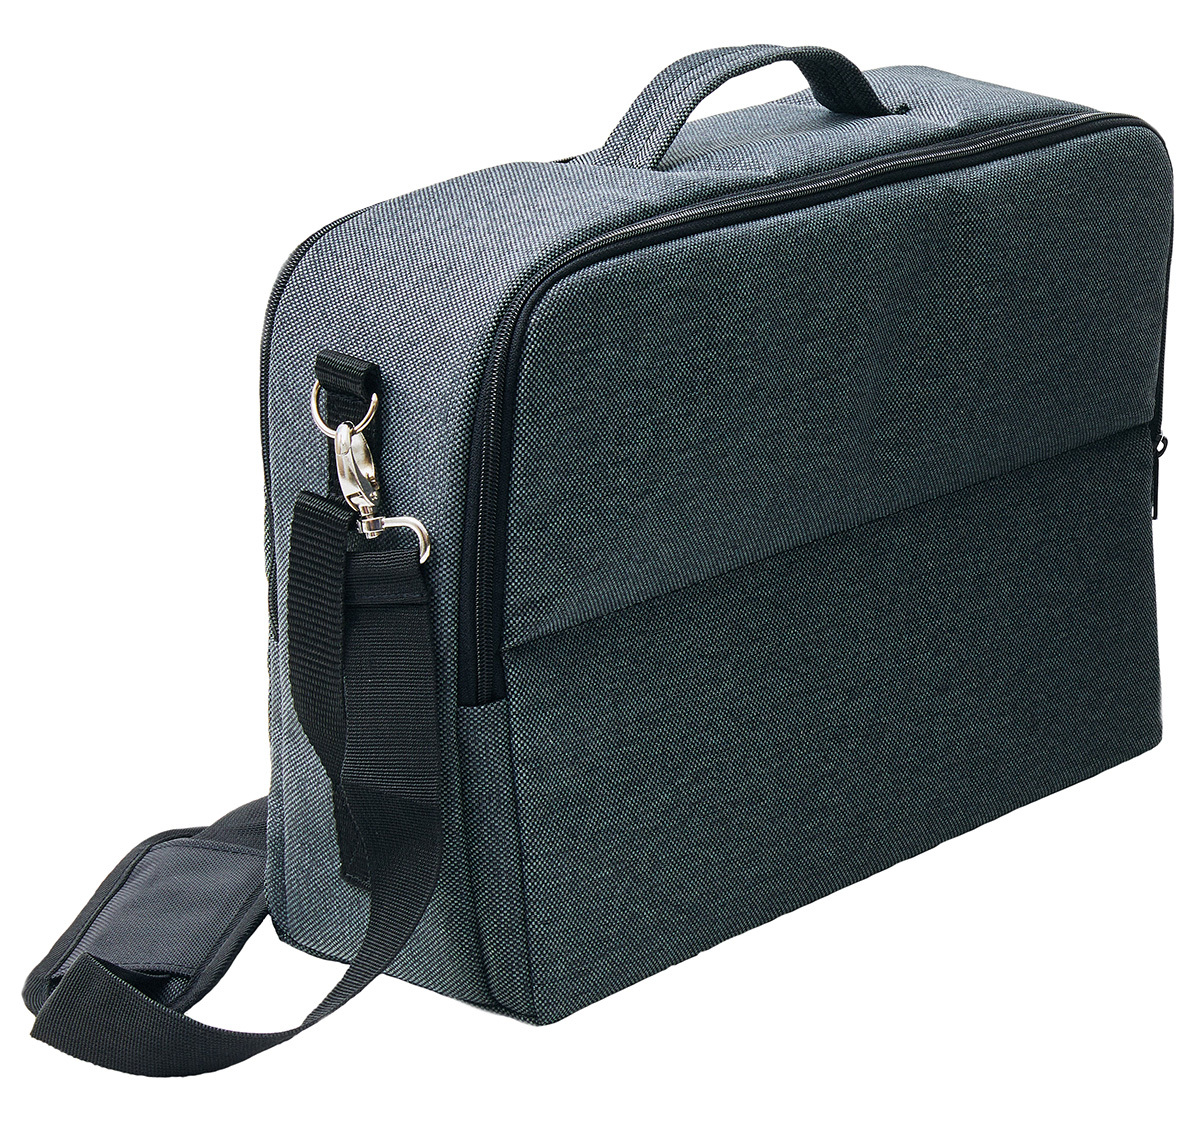 Hotbox 3 Rivet Charcoal Hulshof Business Cases